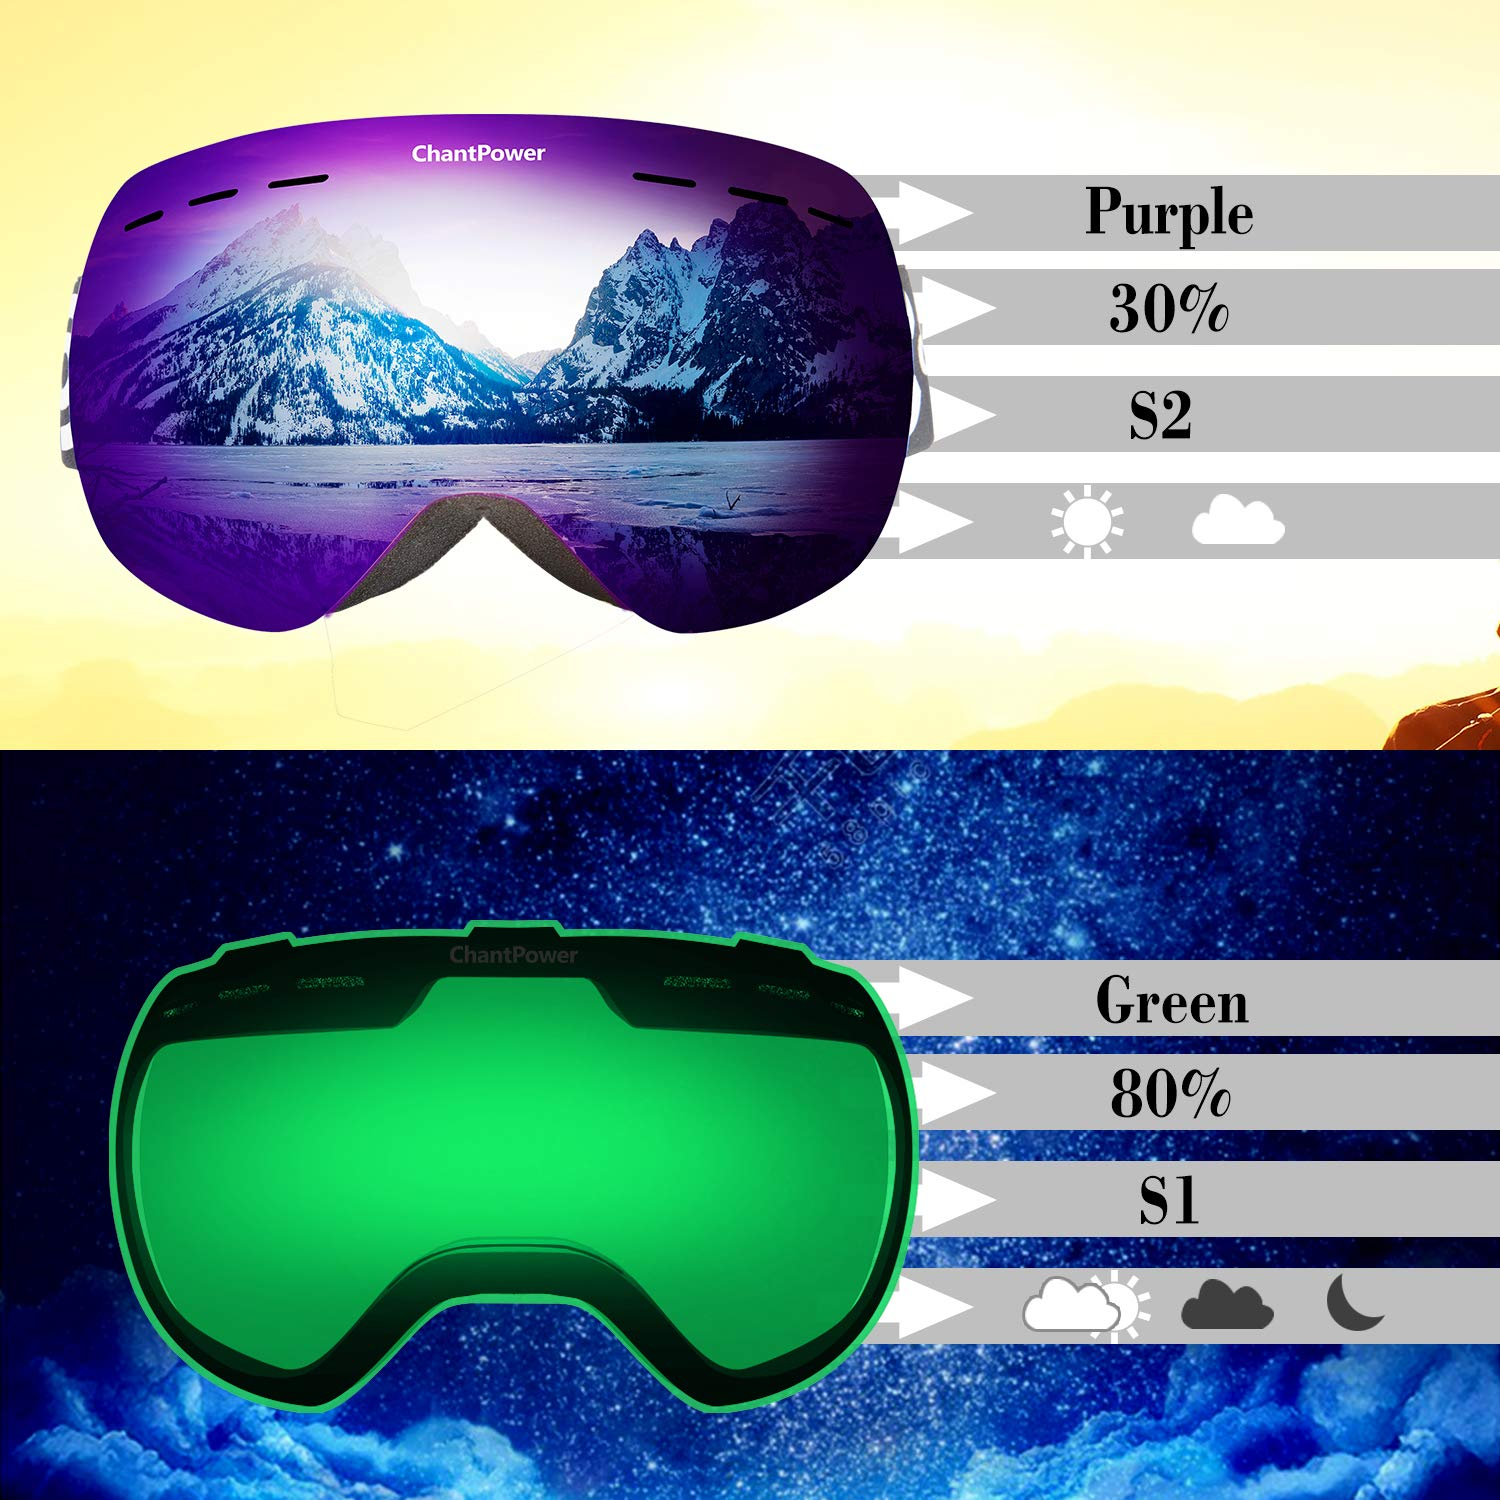 d16f424afcc 2 Seconds Quick Interchangeable Spherical Lenses 2 Lenses Included OTG  Imported Double-Layer Anti-Fog Lens Frameless Magnetic Snowboard Goggles ...